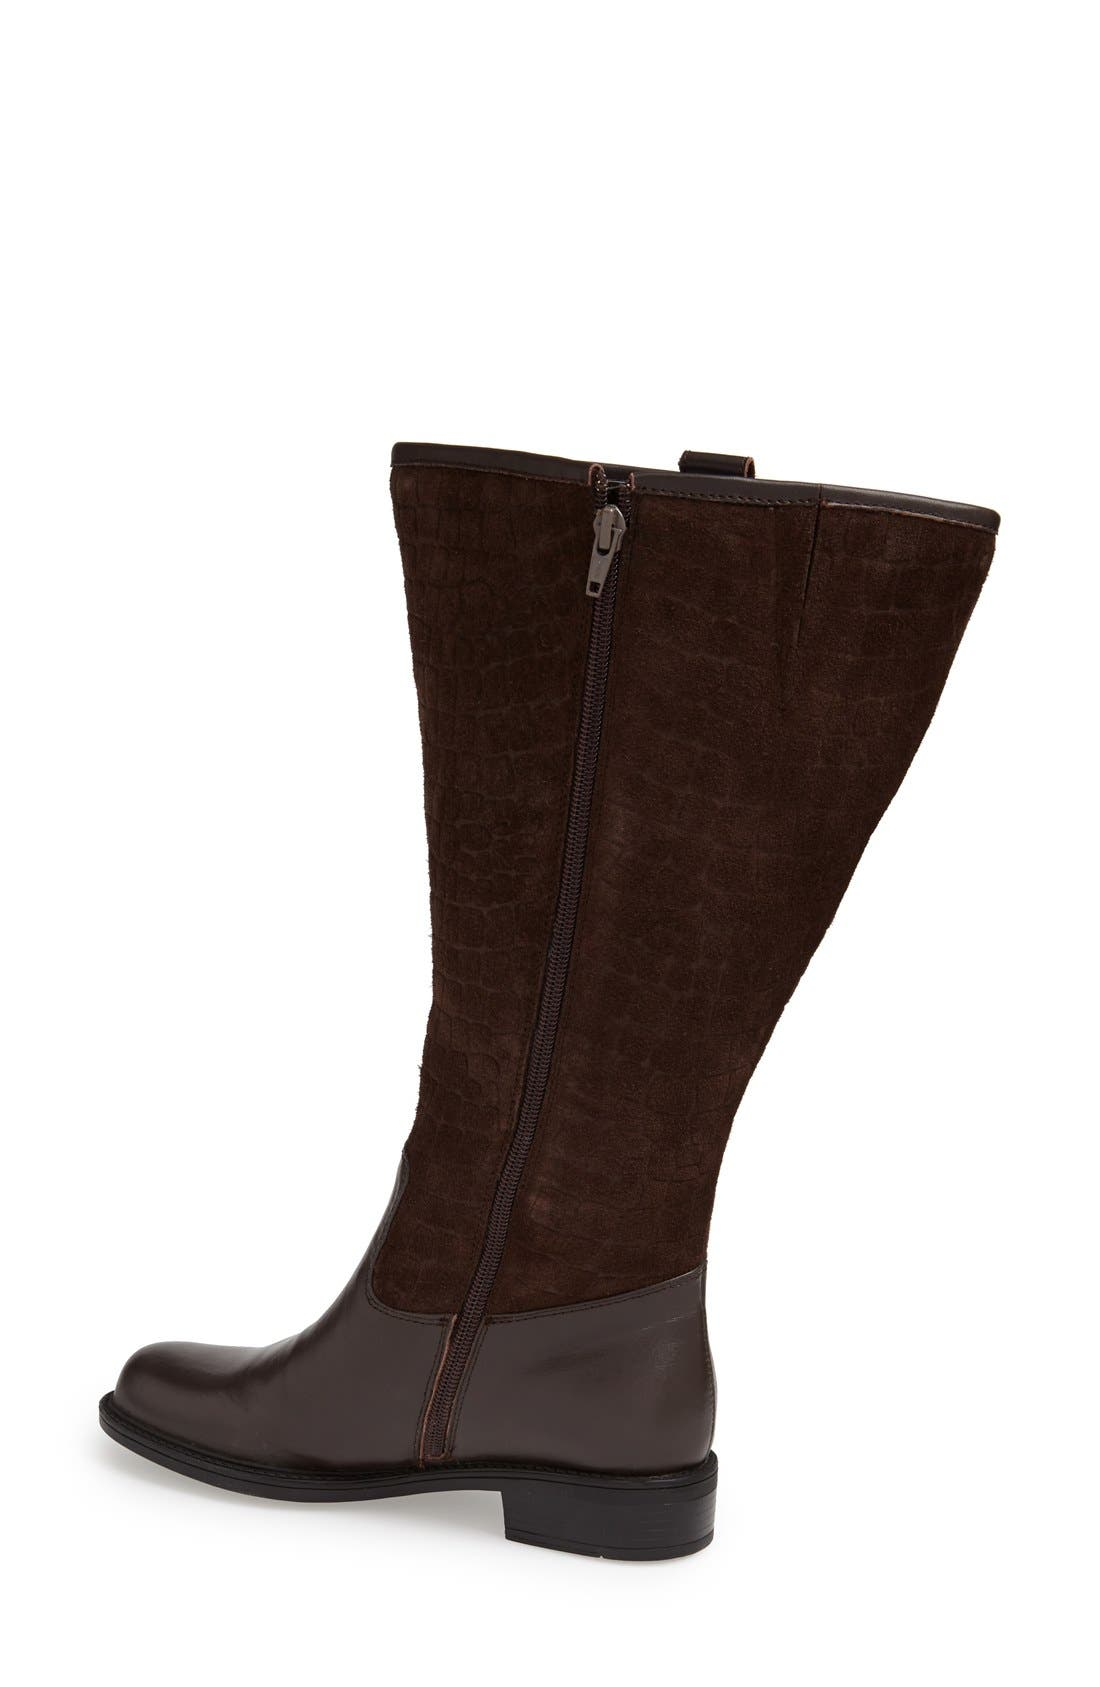 'Best' Calfskin Leather & Suede Boot,                             Alternate thumbnail 4, color,